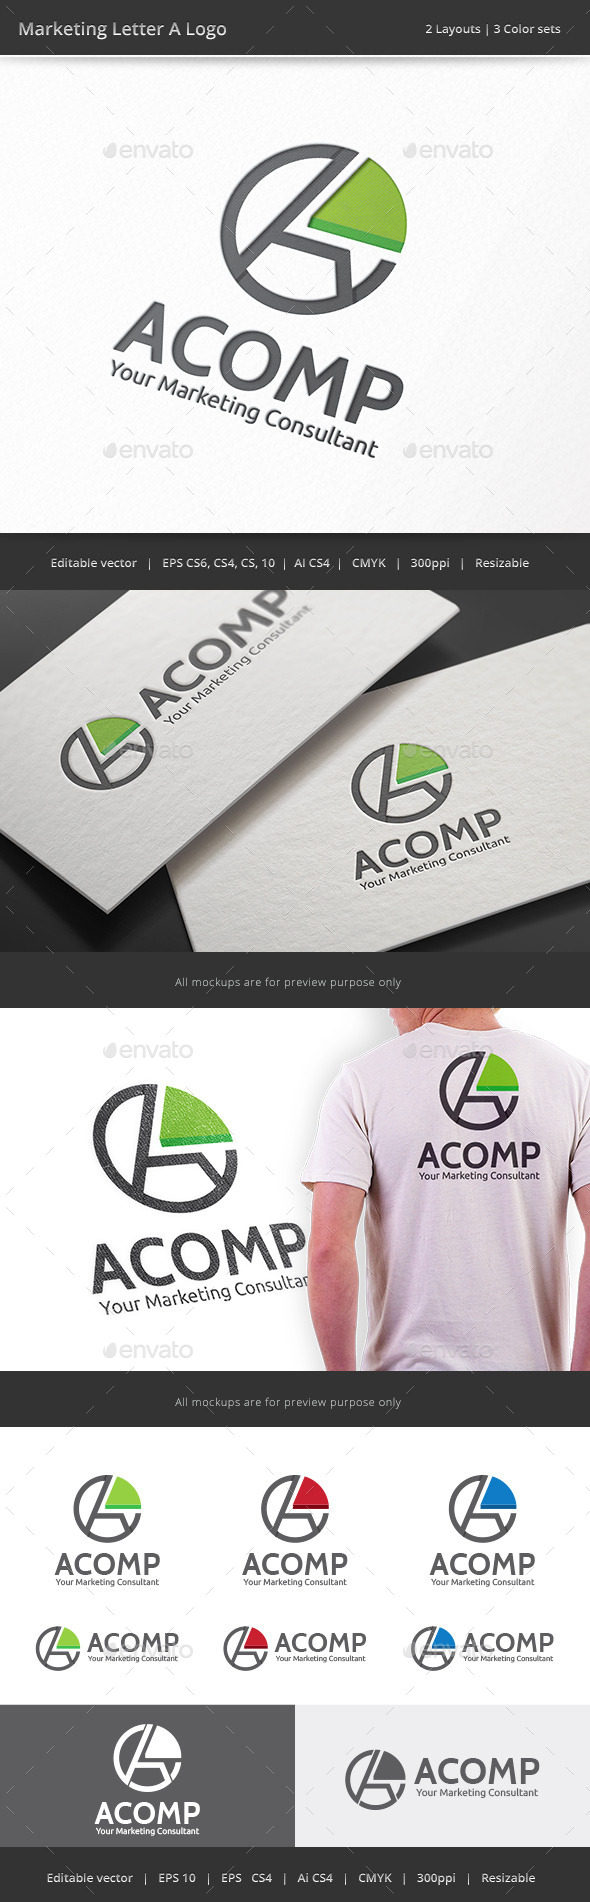 Marketing Letter A Logo - Letters Logo Templates